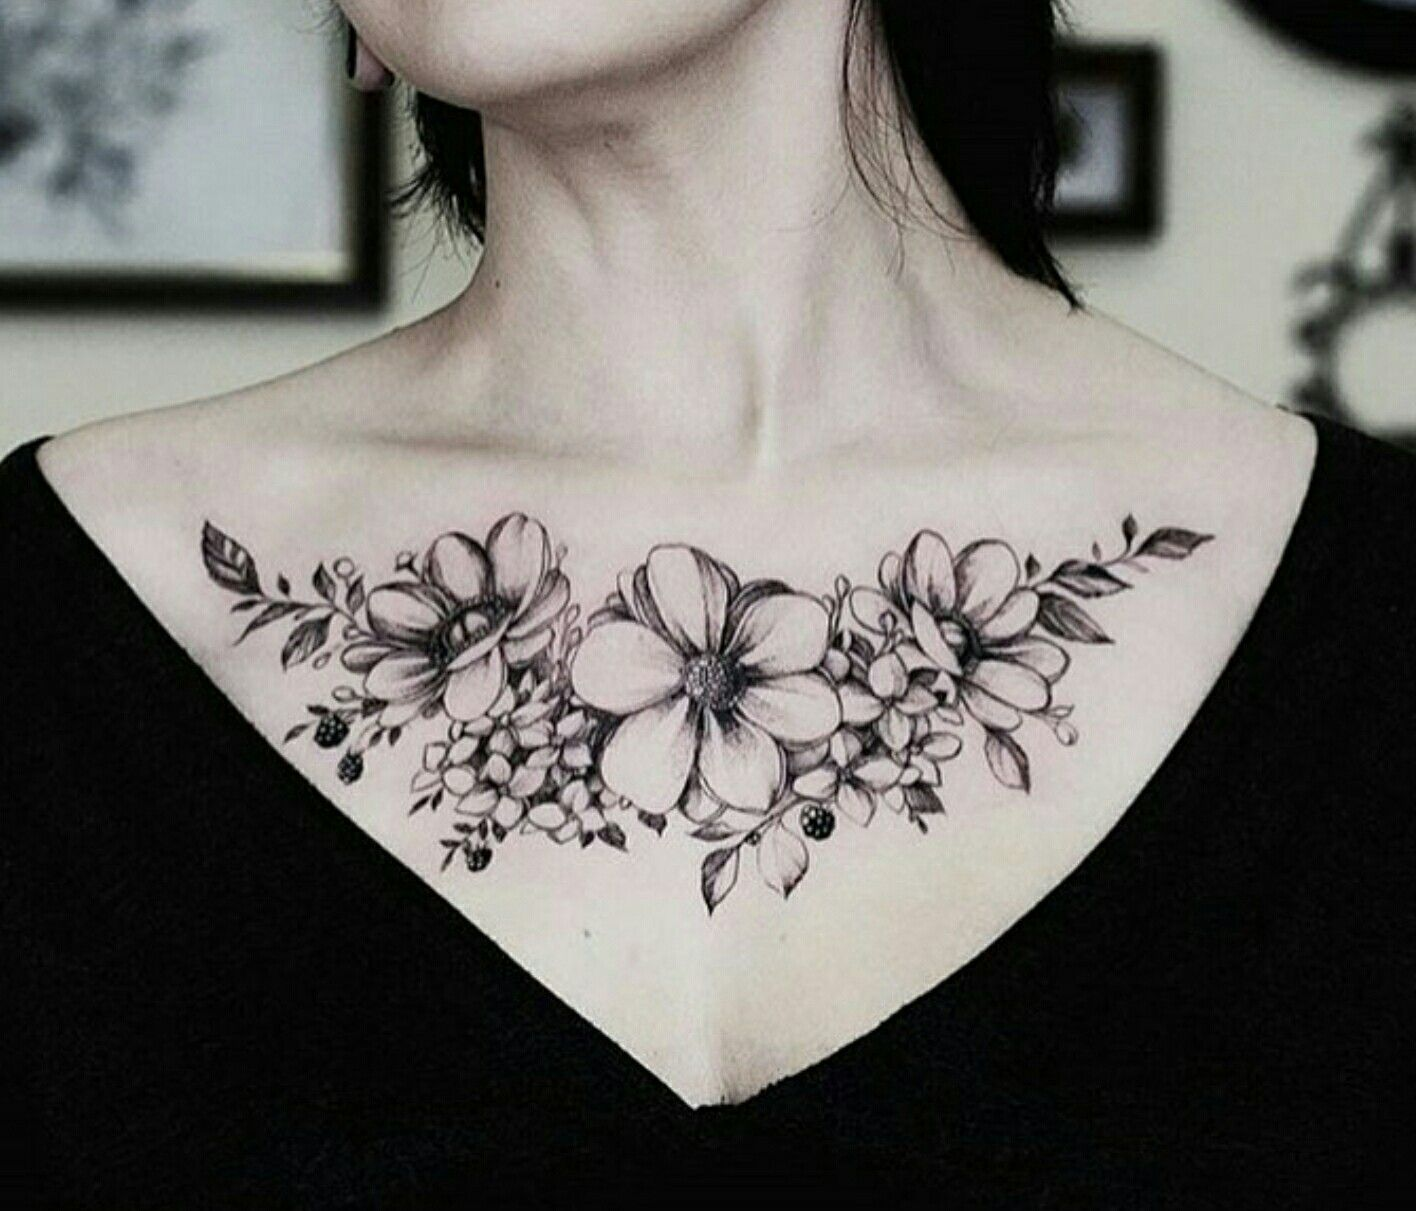 Pin by Nicole Russell on Tattoos Chest tattoos for women